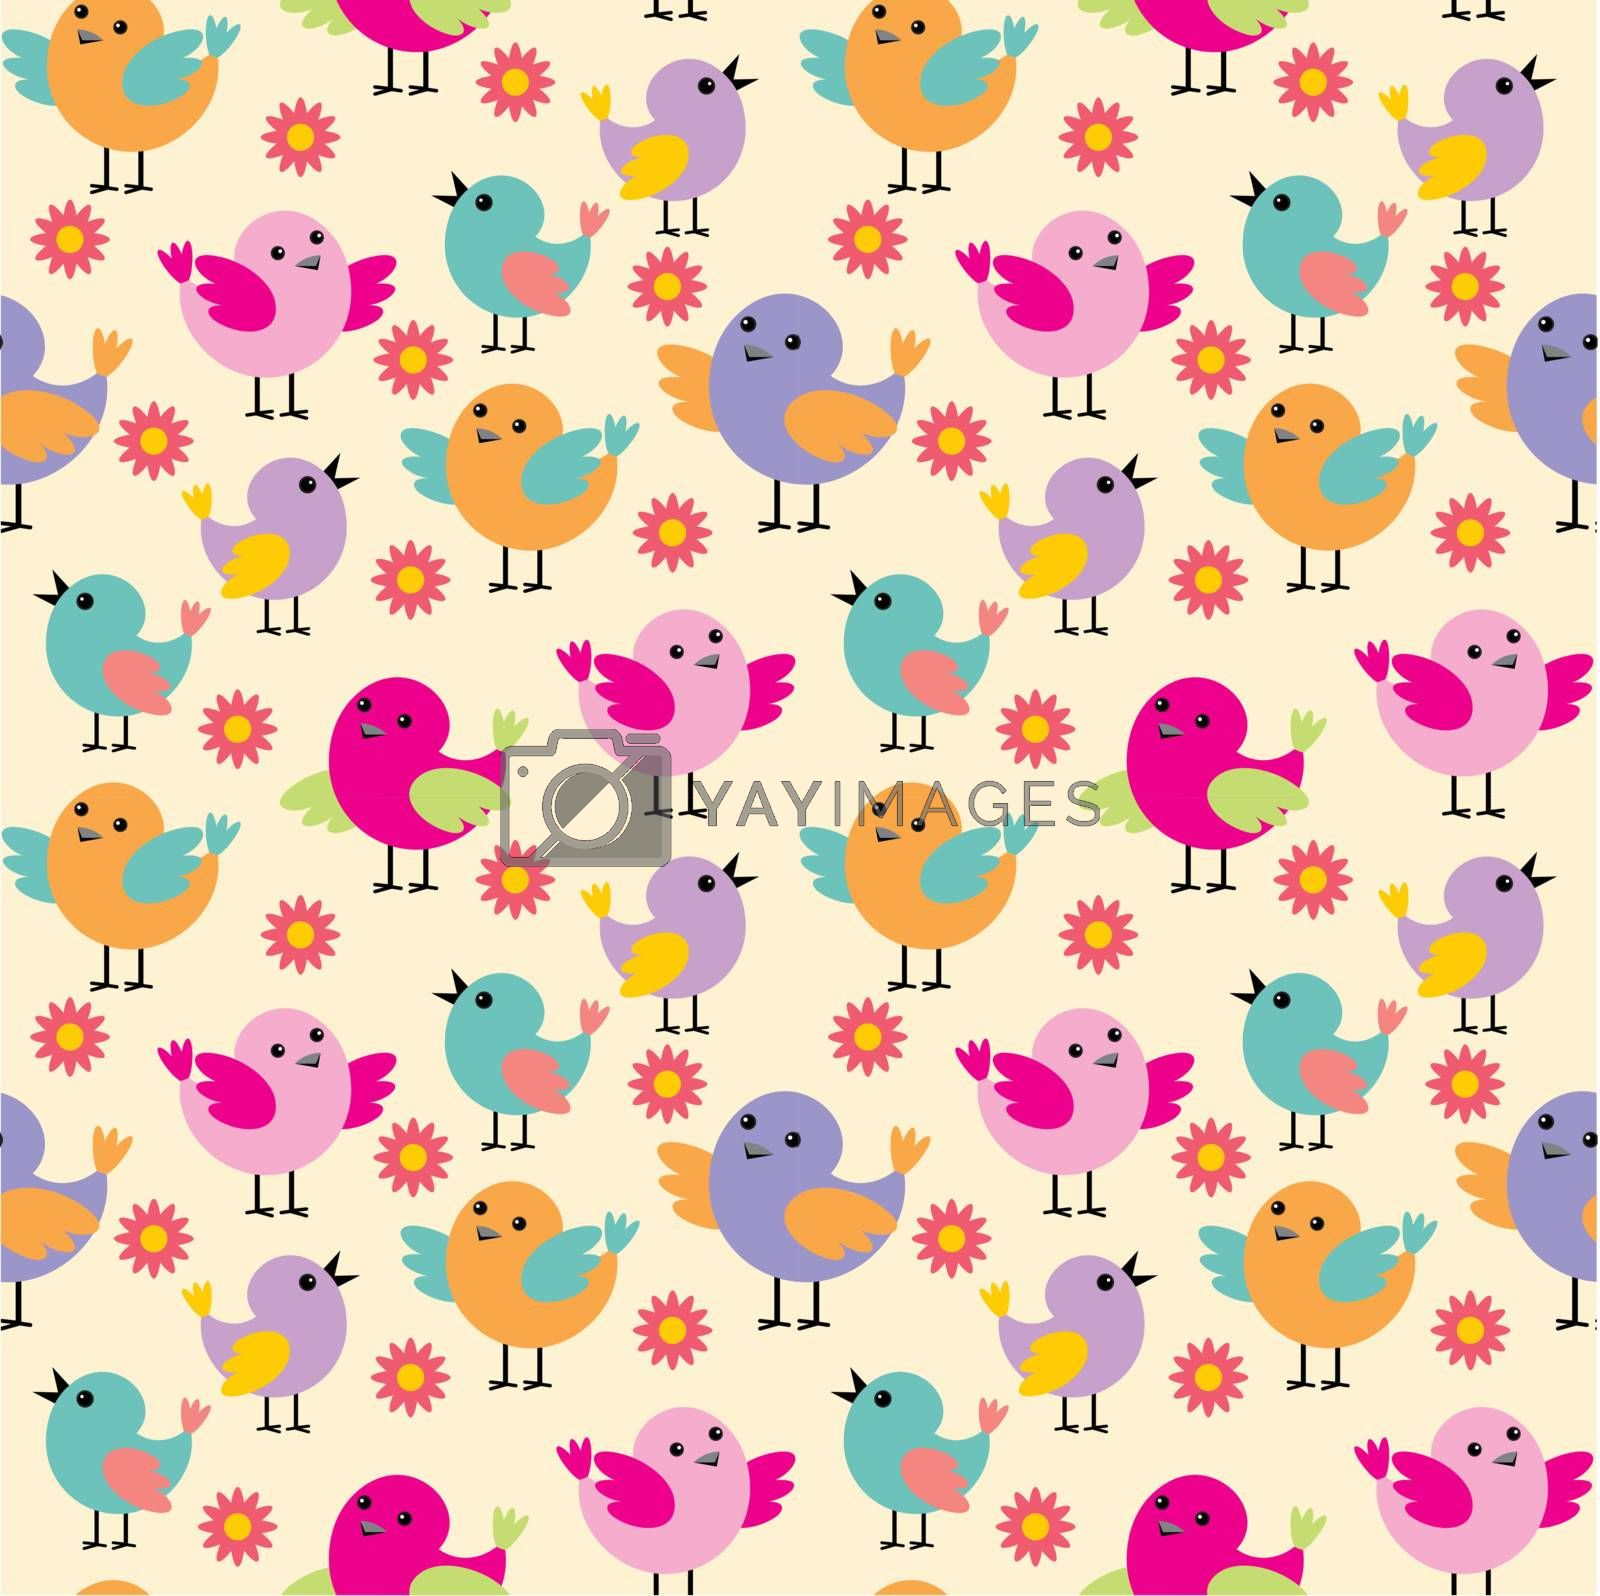 Image of seamless pattern with birds of different colors and sizes.